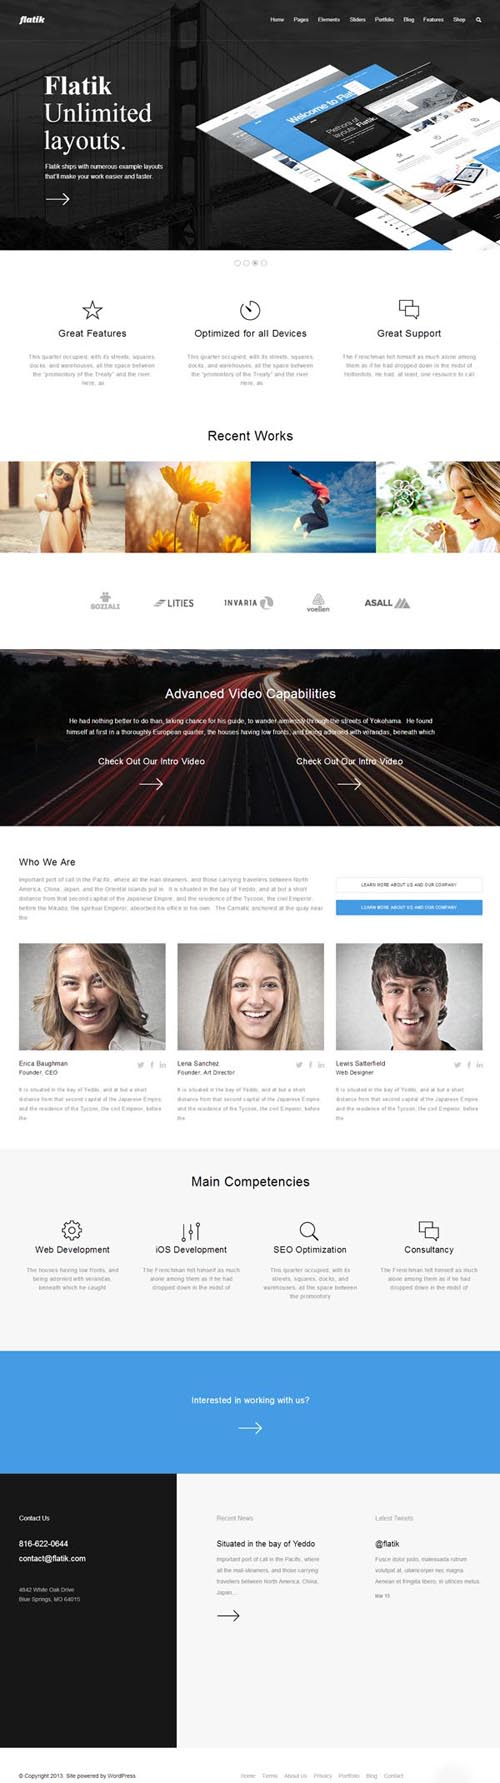 Flatik - Responsive Multi-Purpose Theme